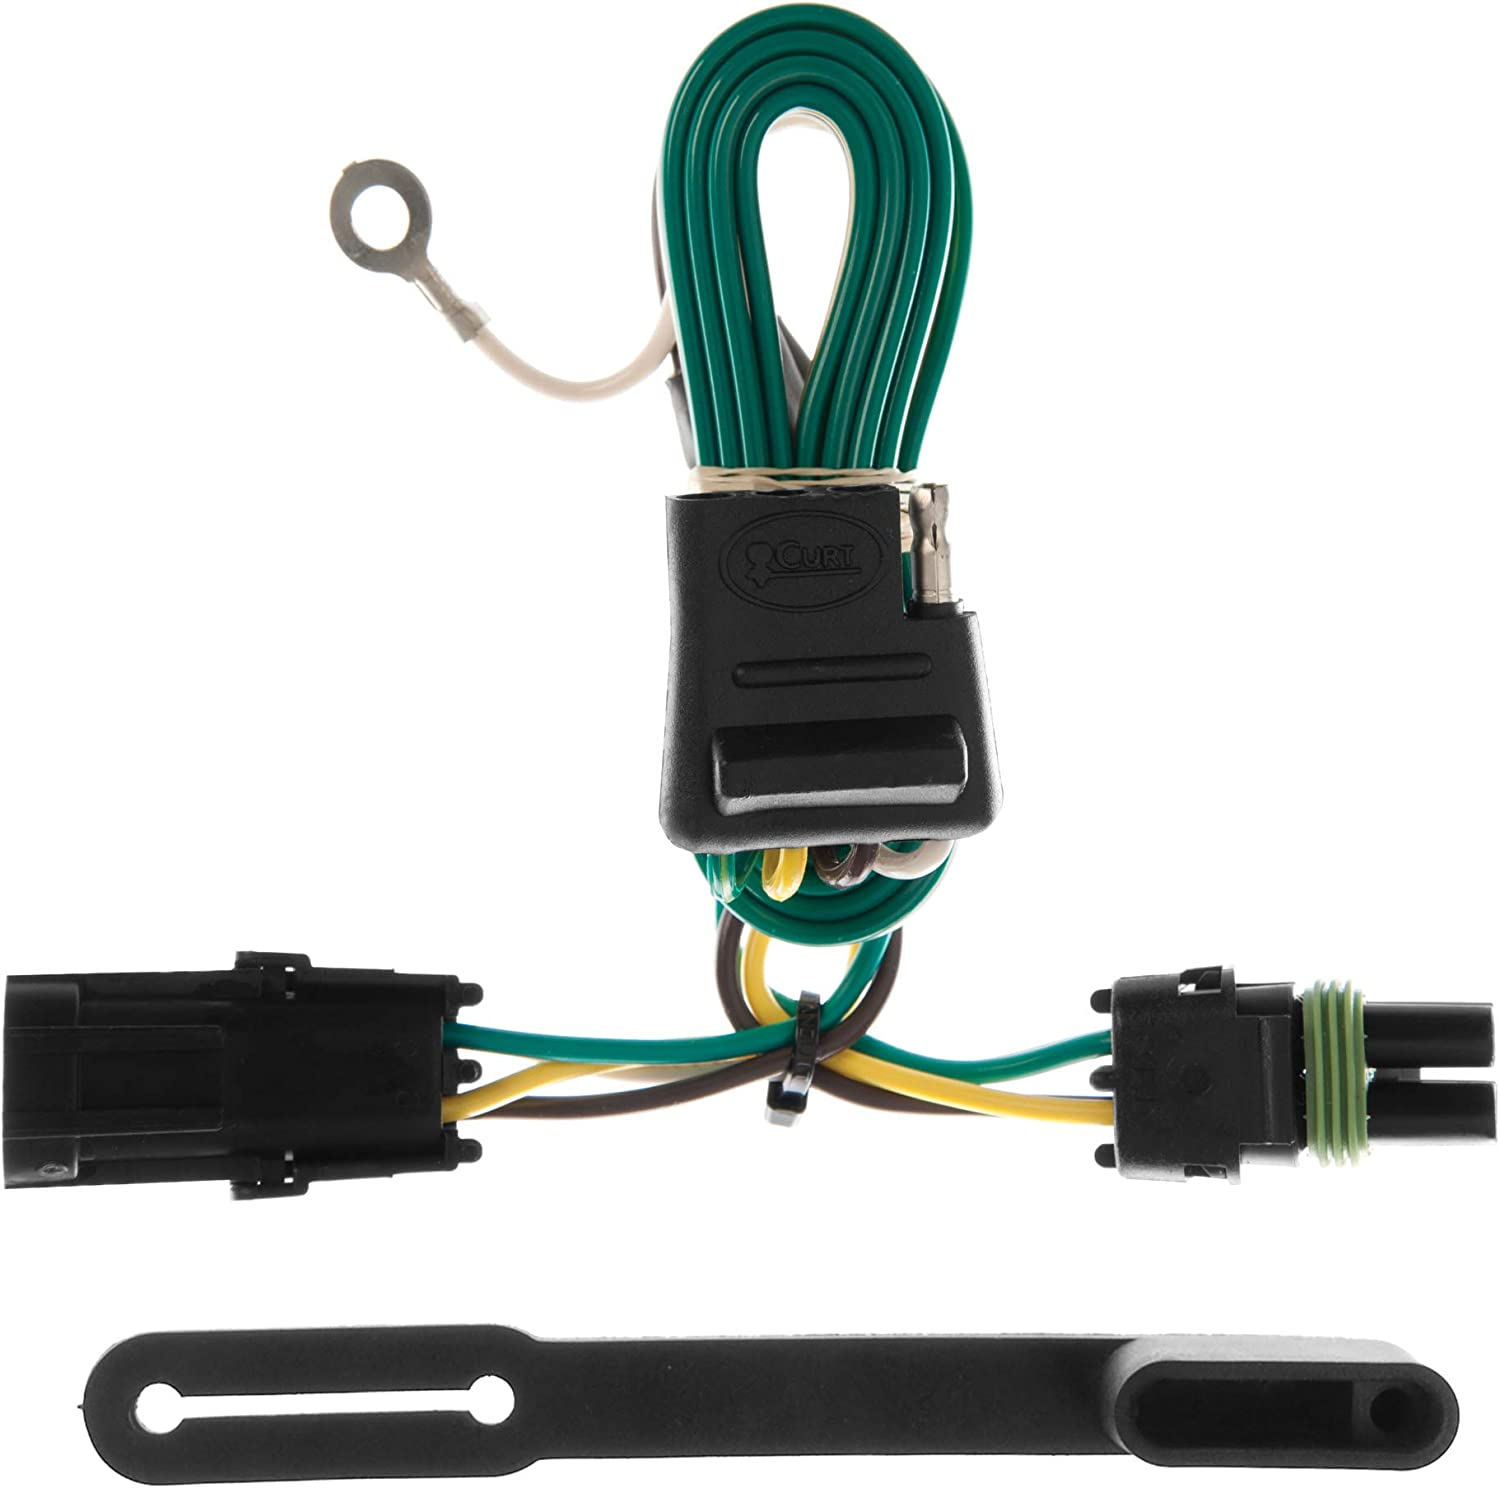 Gmc Truck Wiring Harness from images-na.ssl-images-amazon.com